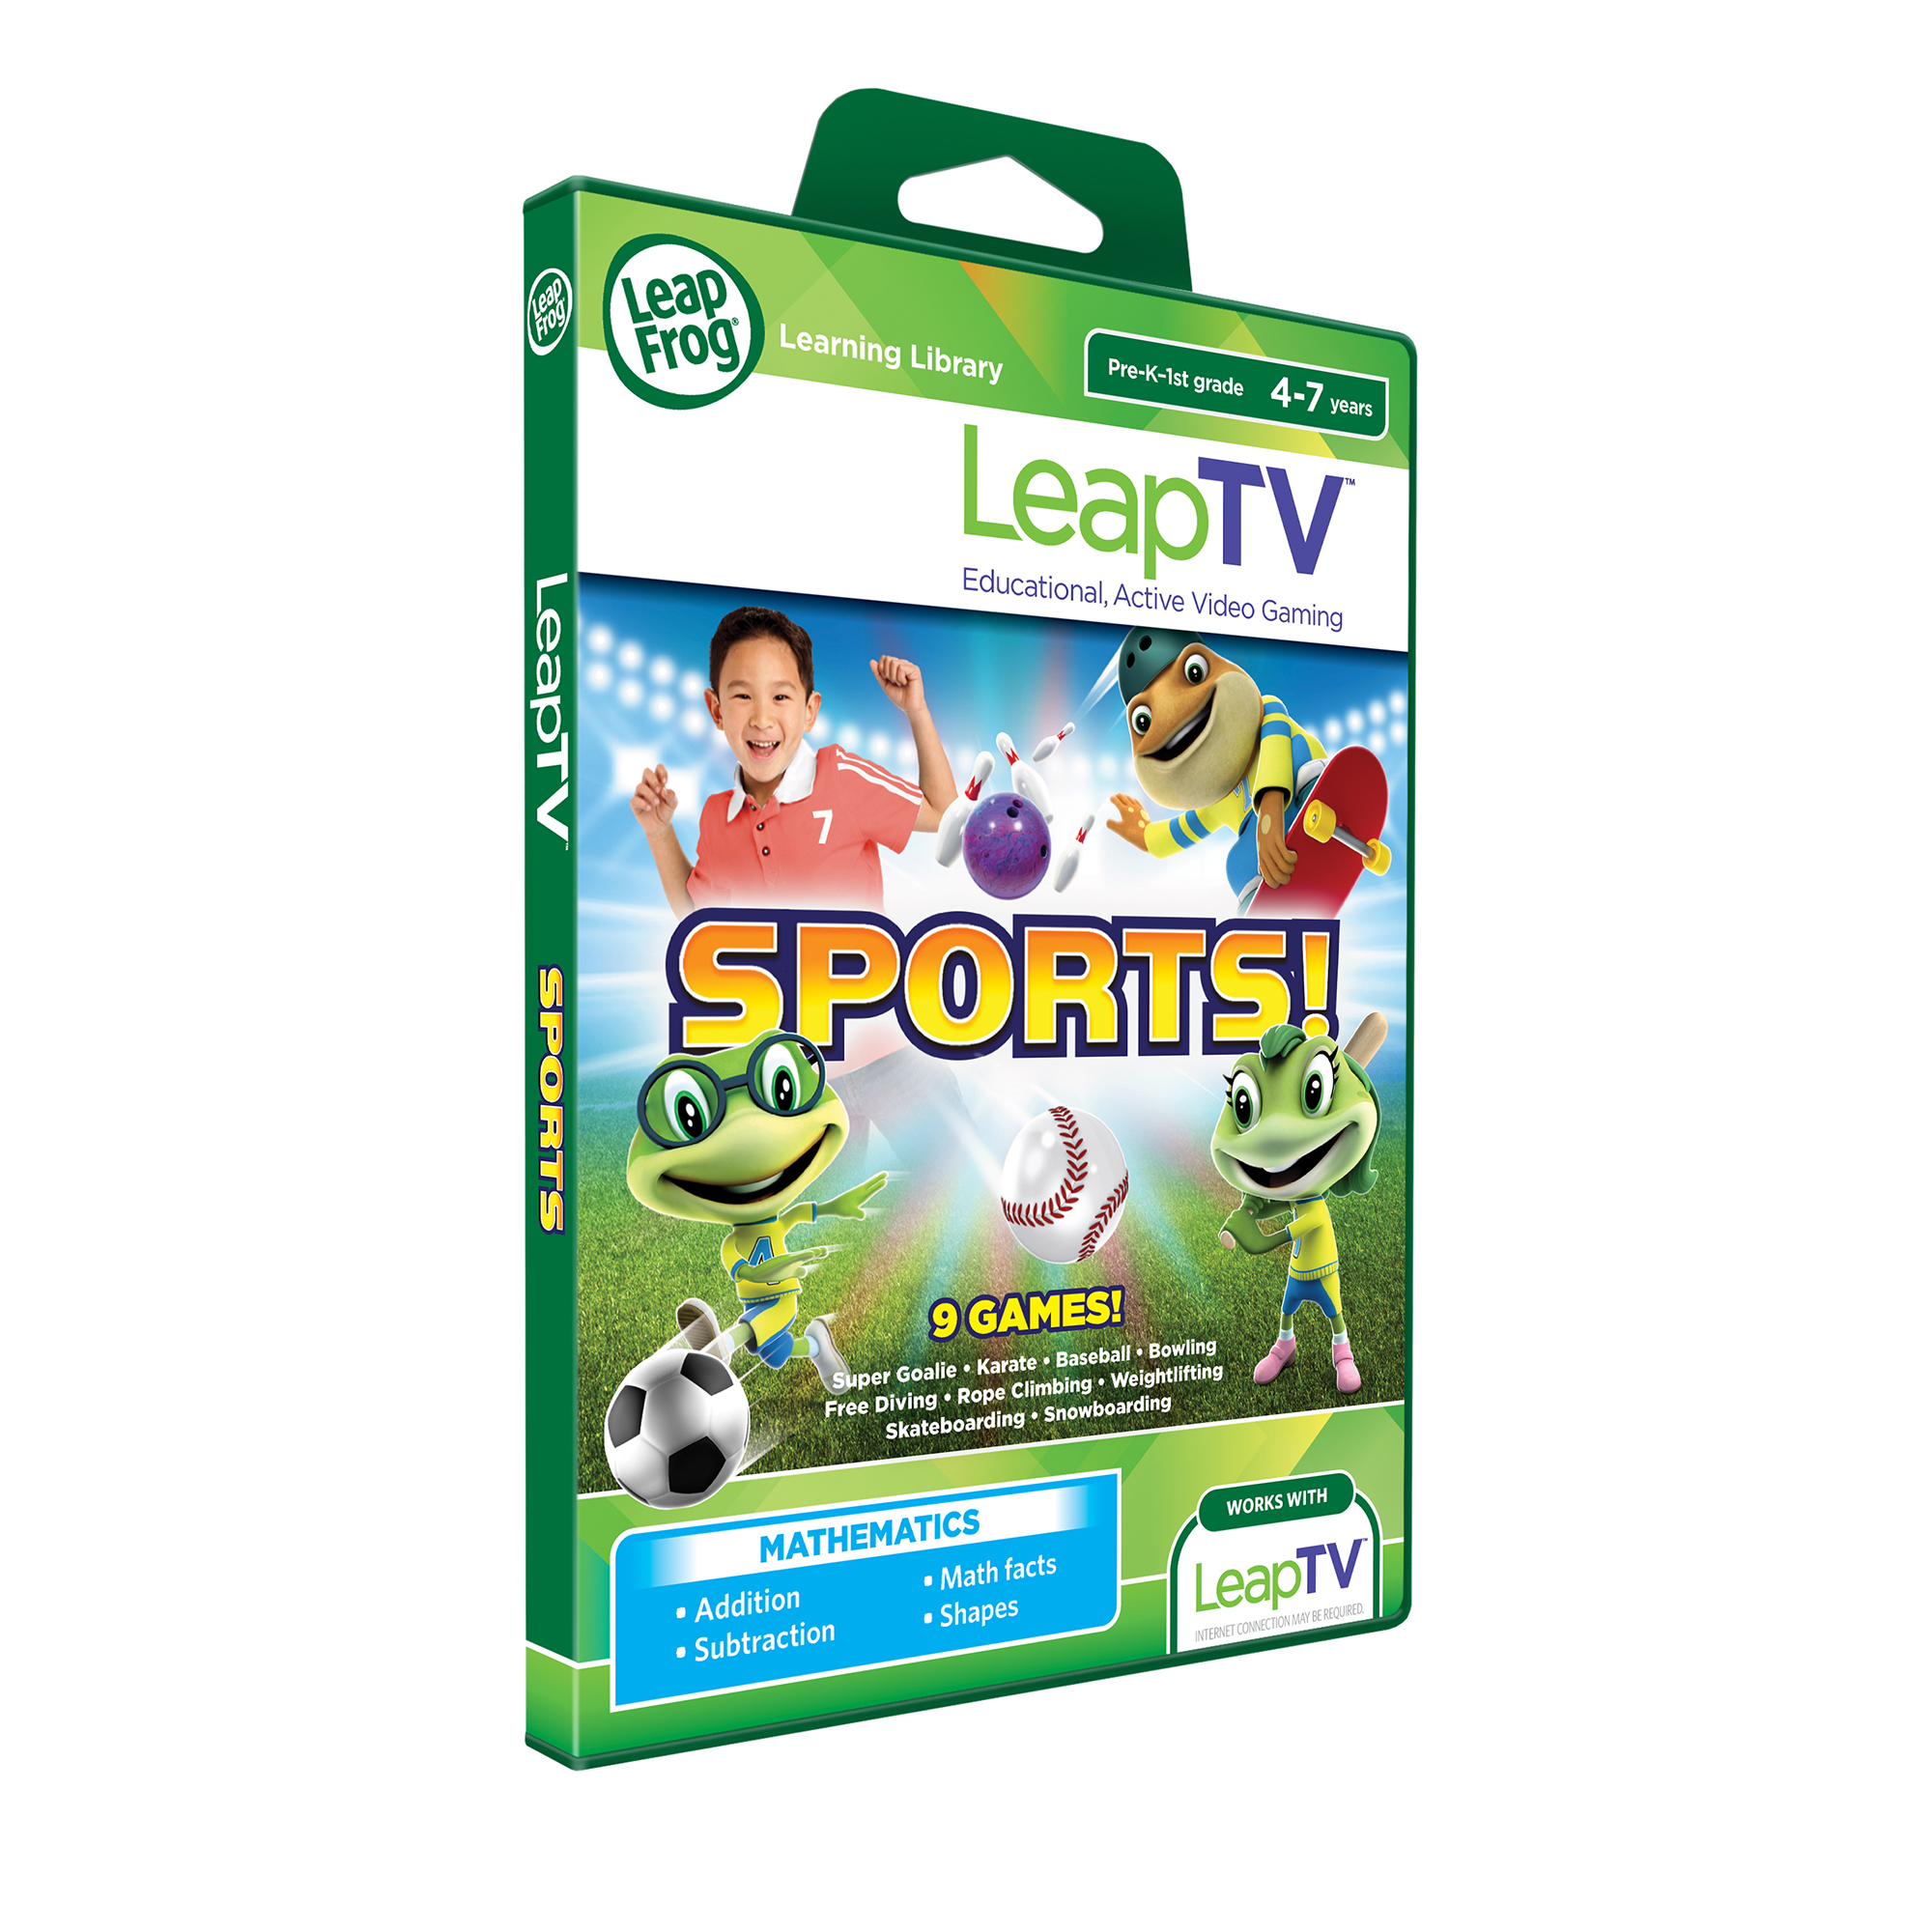 Picture of LeapFrog Sports LeapTV Software